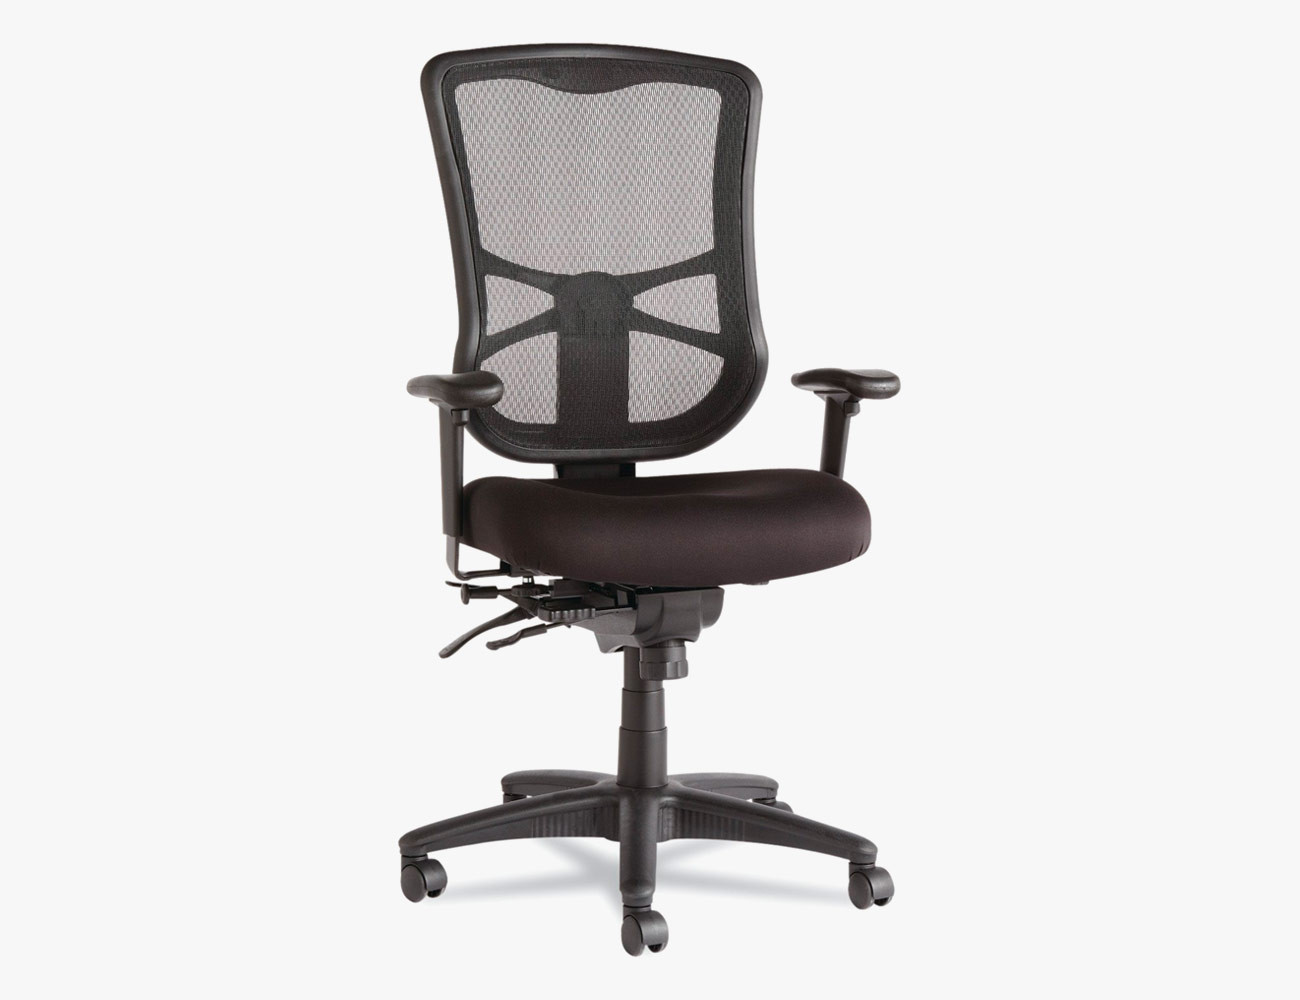 Best ideas about Best Affordable Office Chair . Save or Pin The 14 Best fice Chairs of 2018 • Gear Patrol Now.